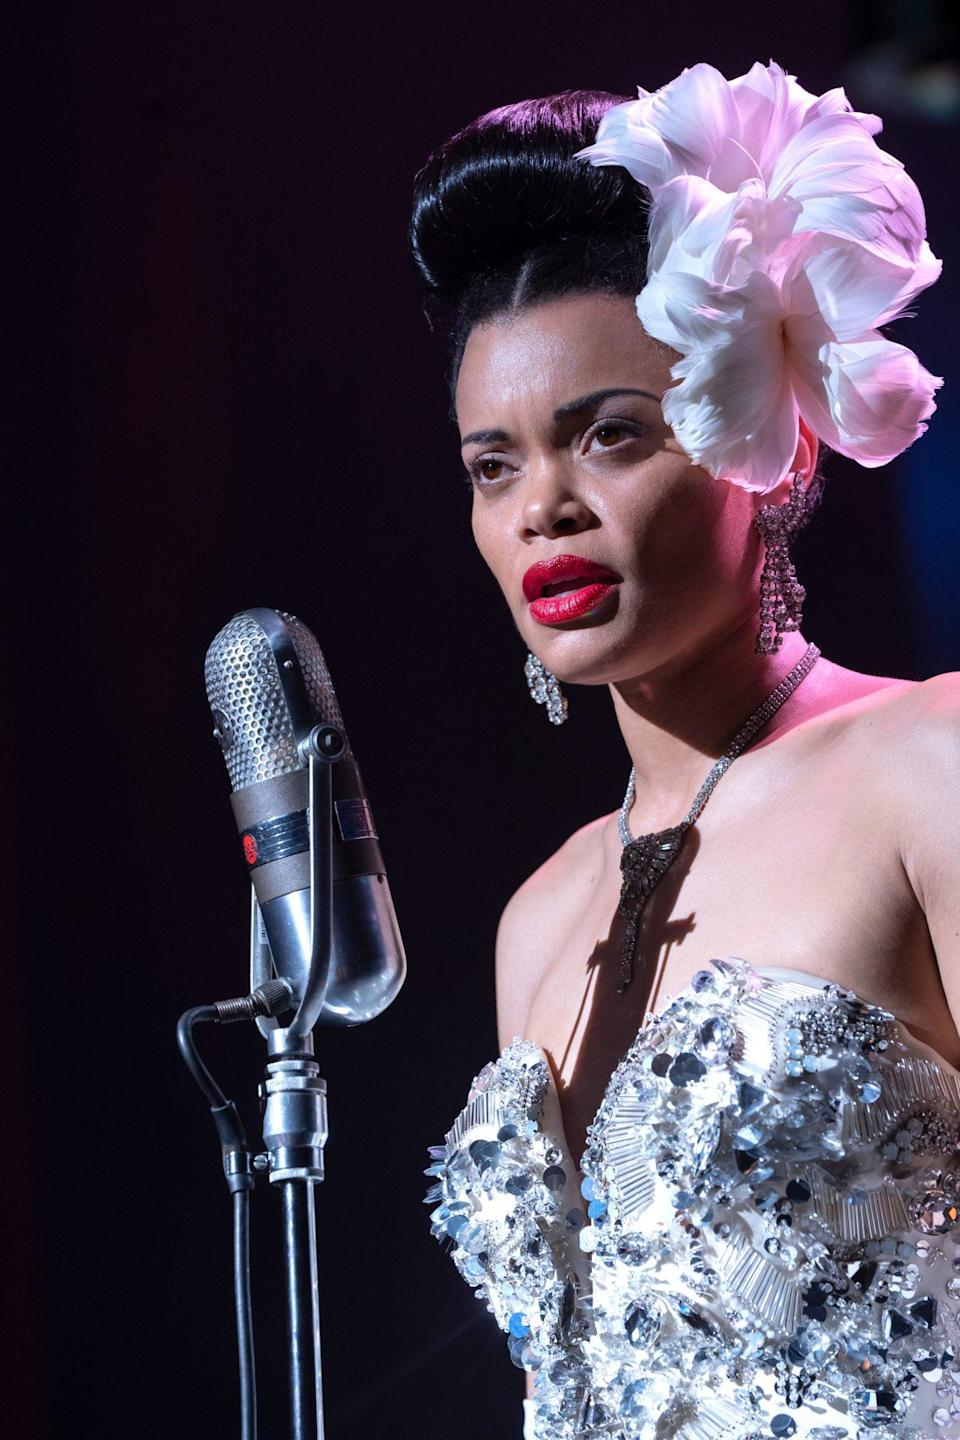 <p>The singer's portrayal of Billie Holiday in <em>The United States vs. Billie Holiday </em>earned her two Golden Globe nominations: one for best original song and another for best actress in a motion picture – drama. </p>